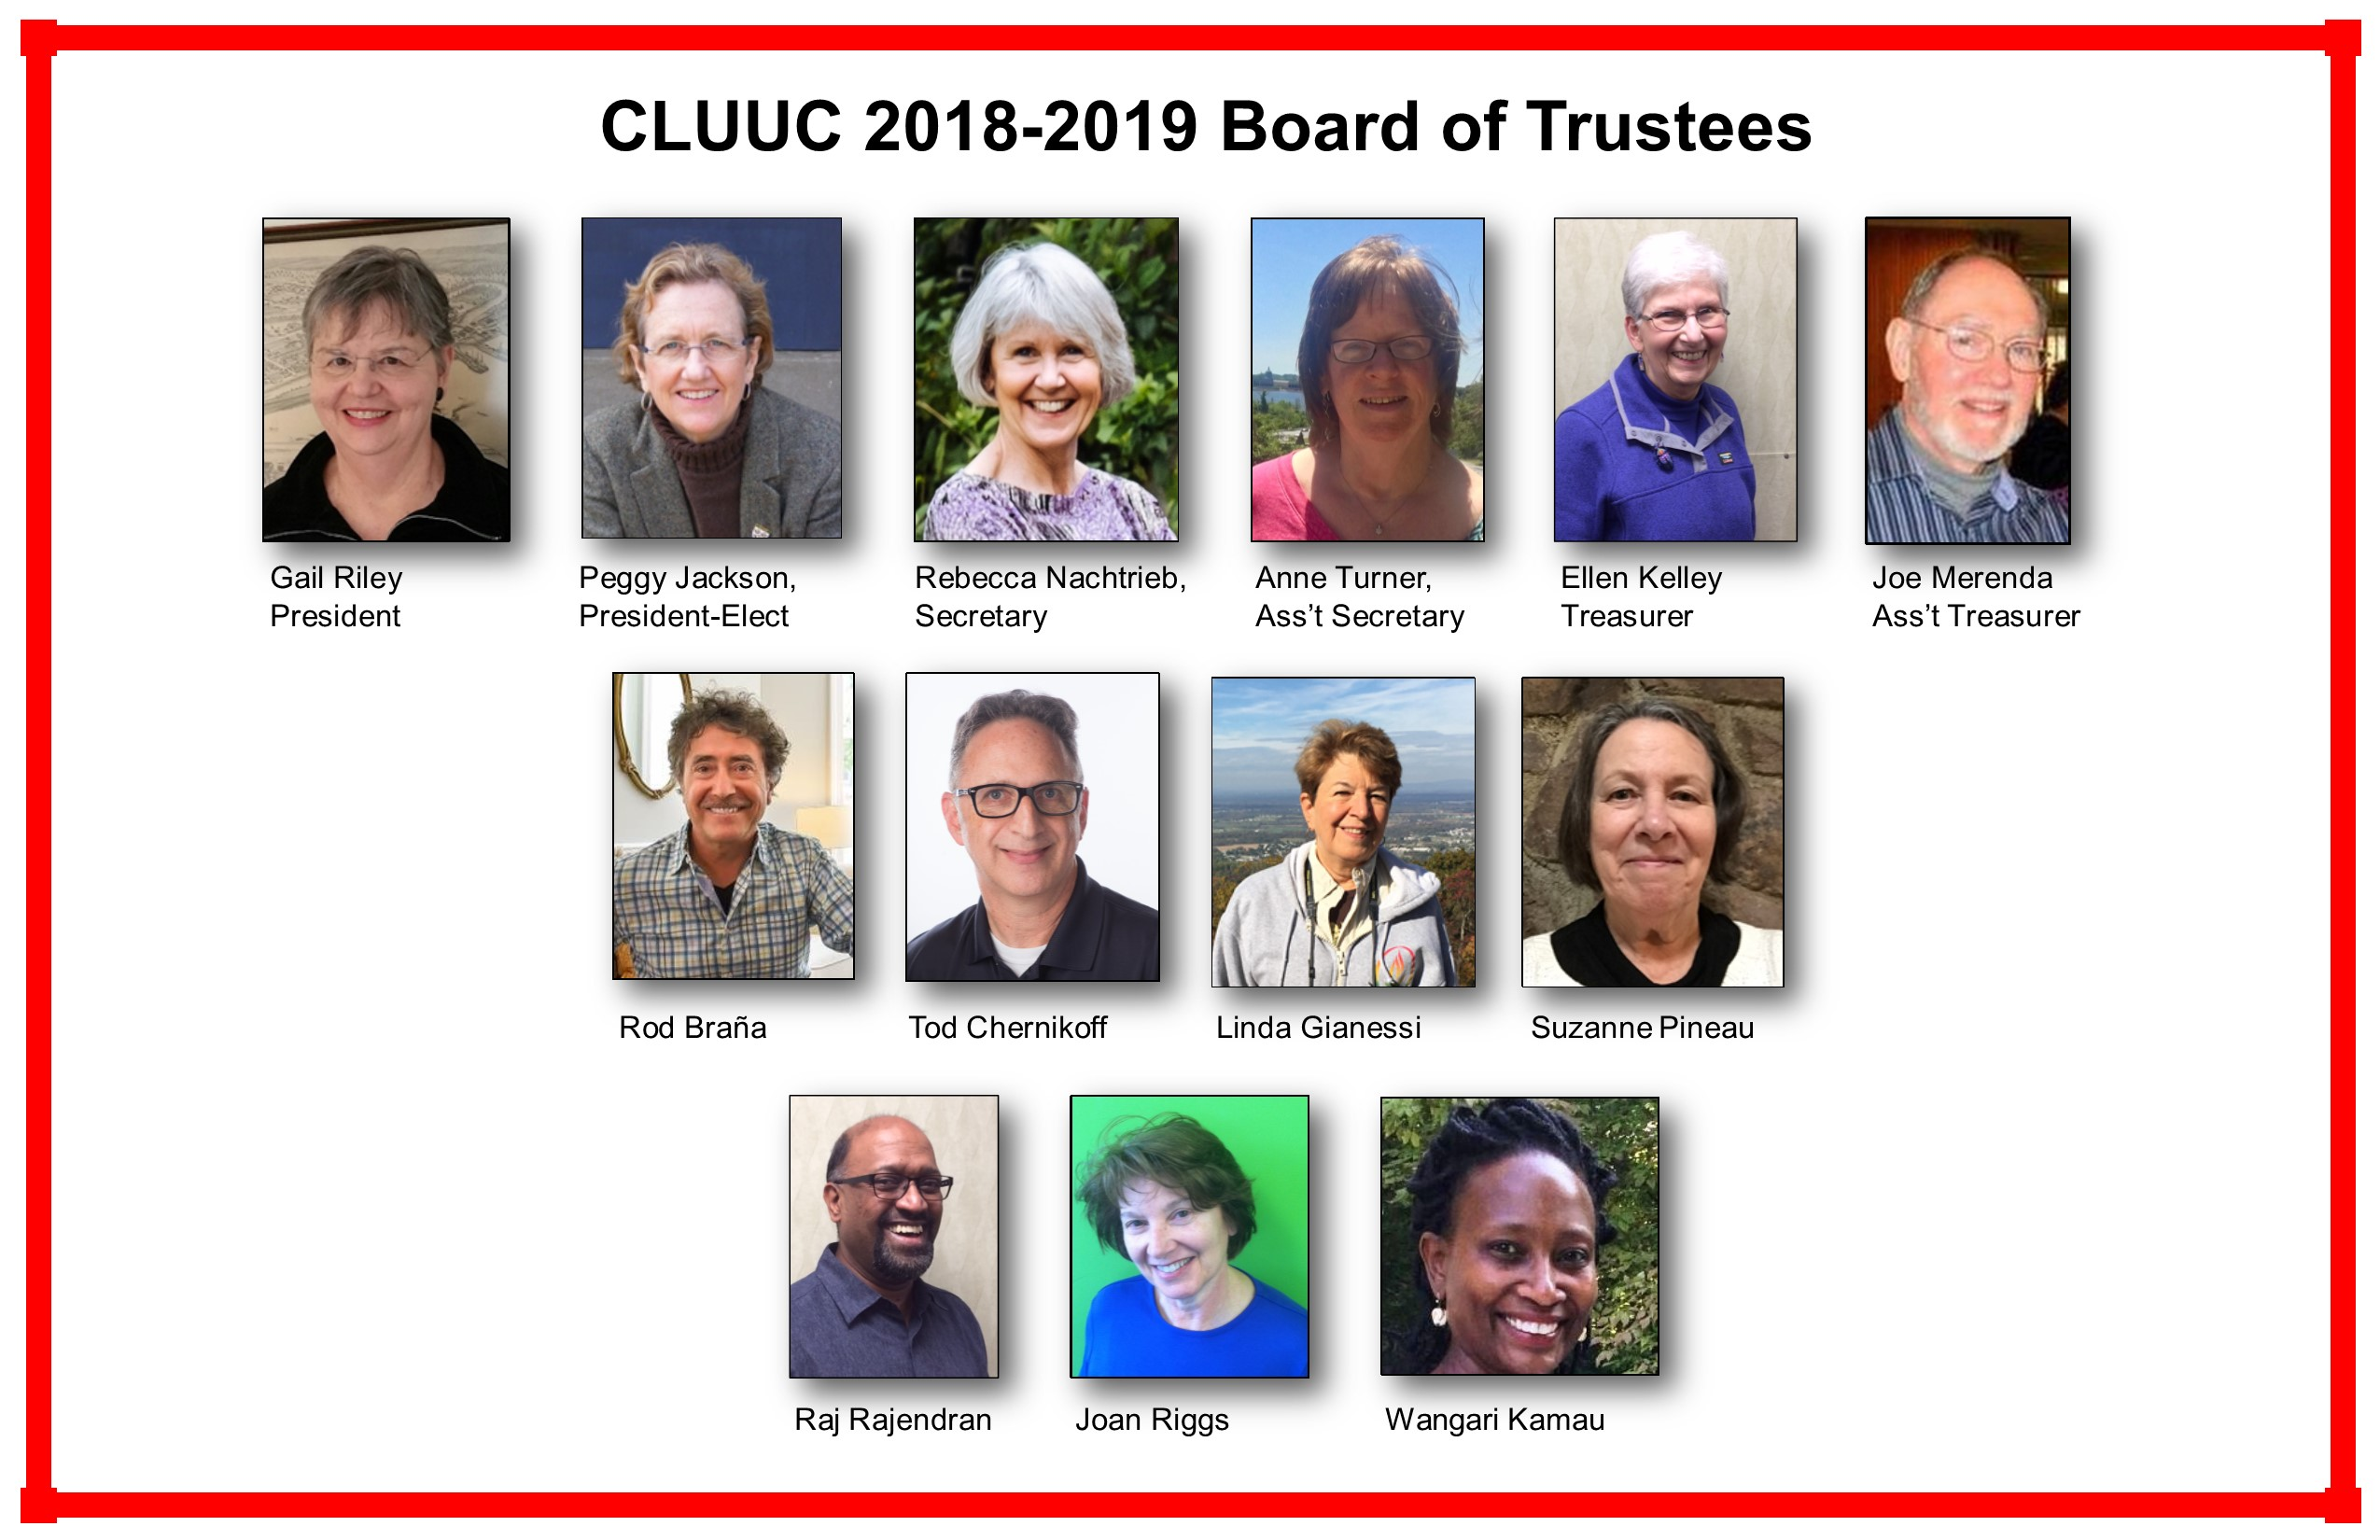 updated board of trustees headshots and names 2018-19